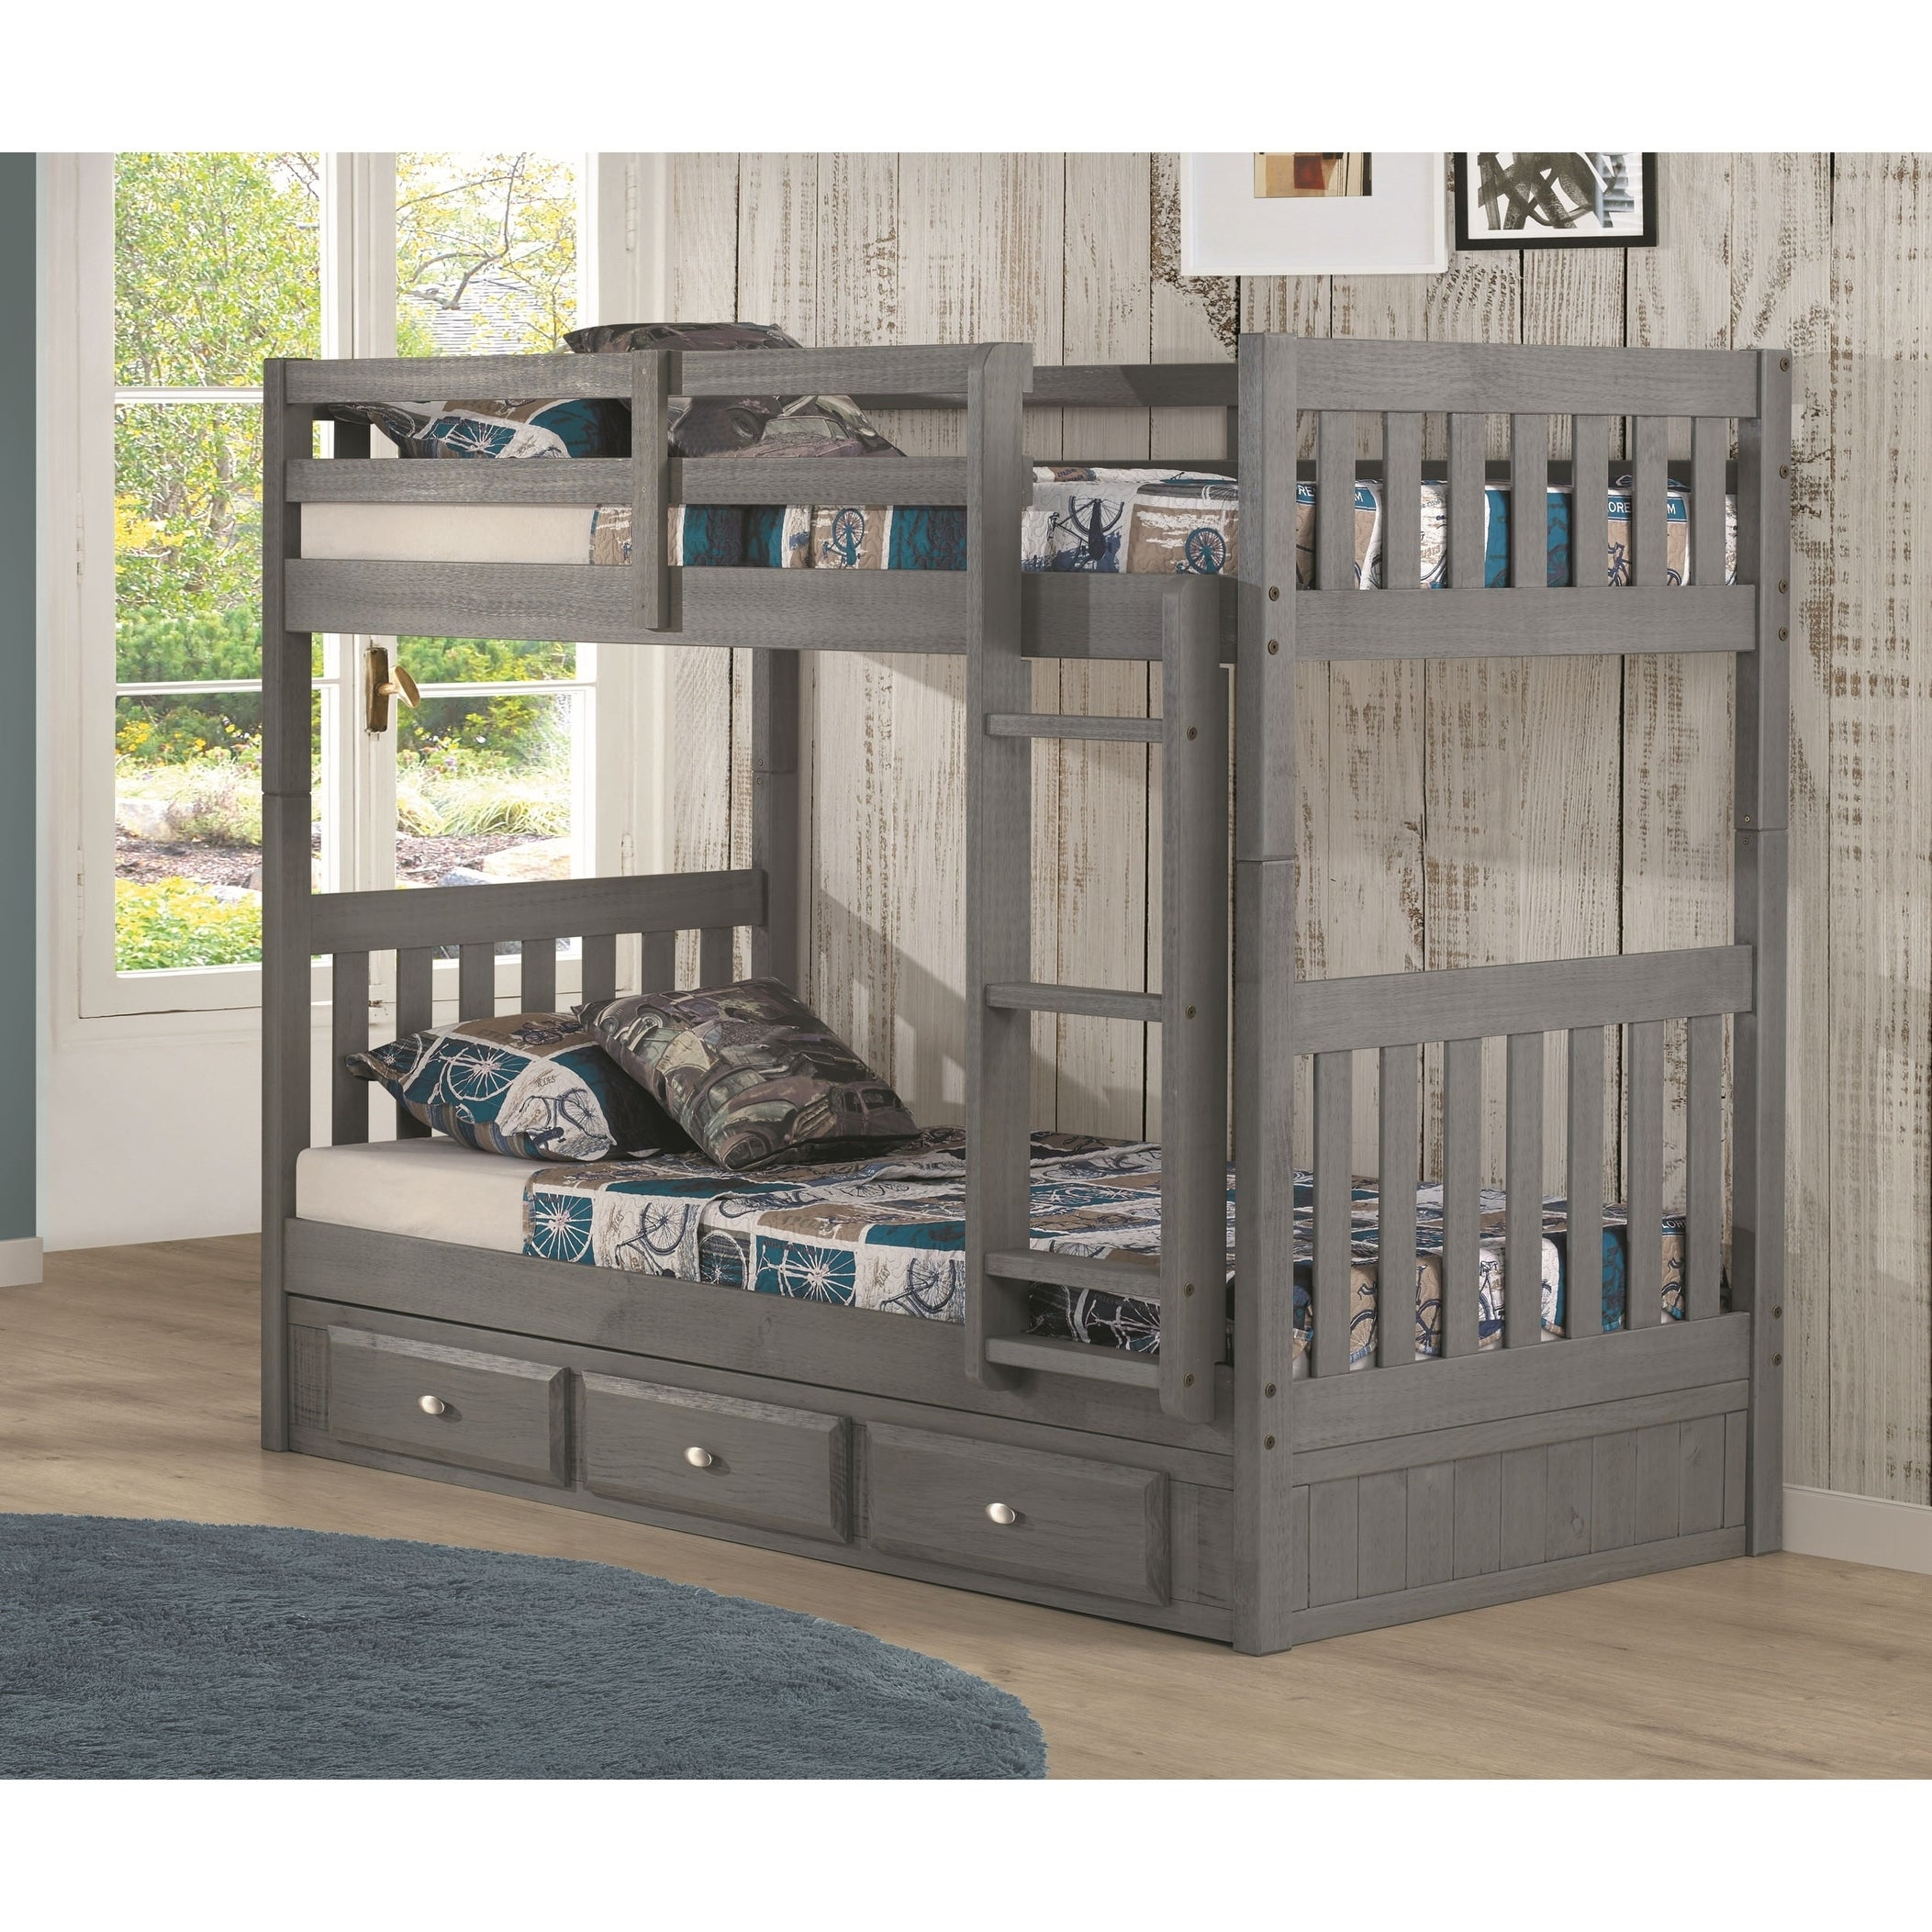 American Furniture Clics Solid Pine Twin Bunk Bed With Three Drawers In Charcoal